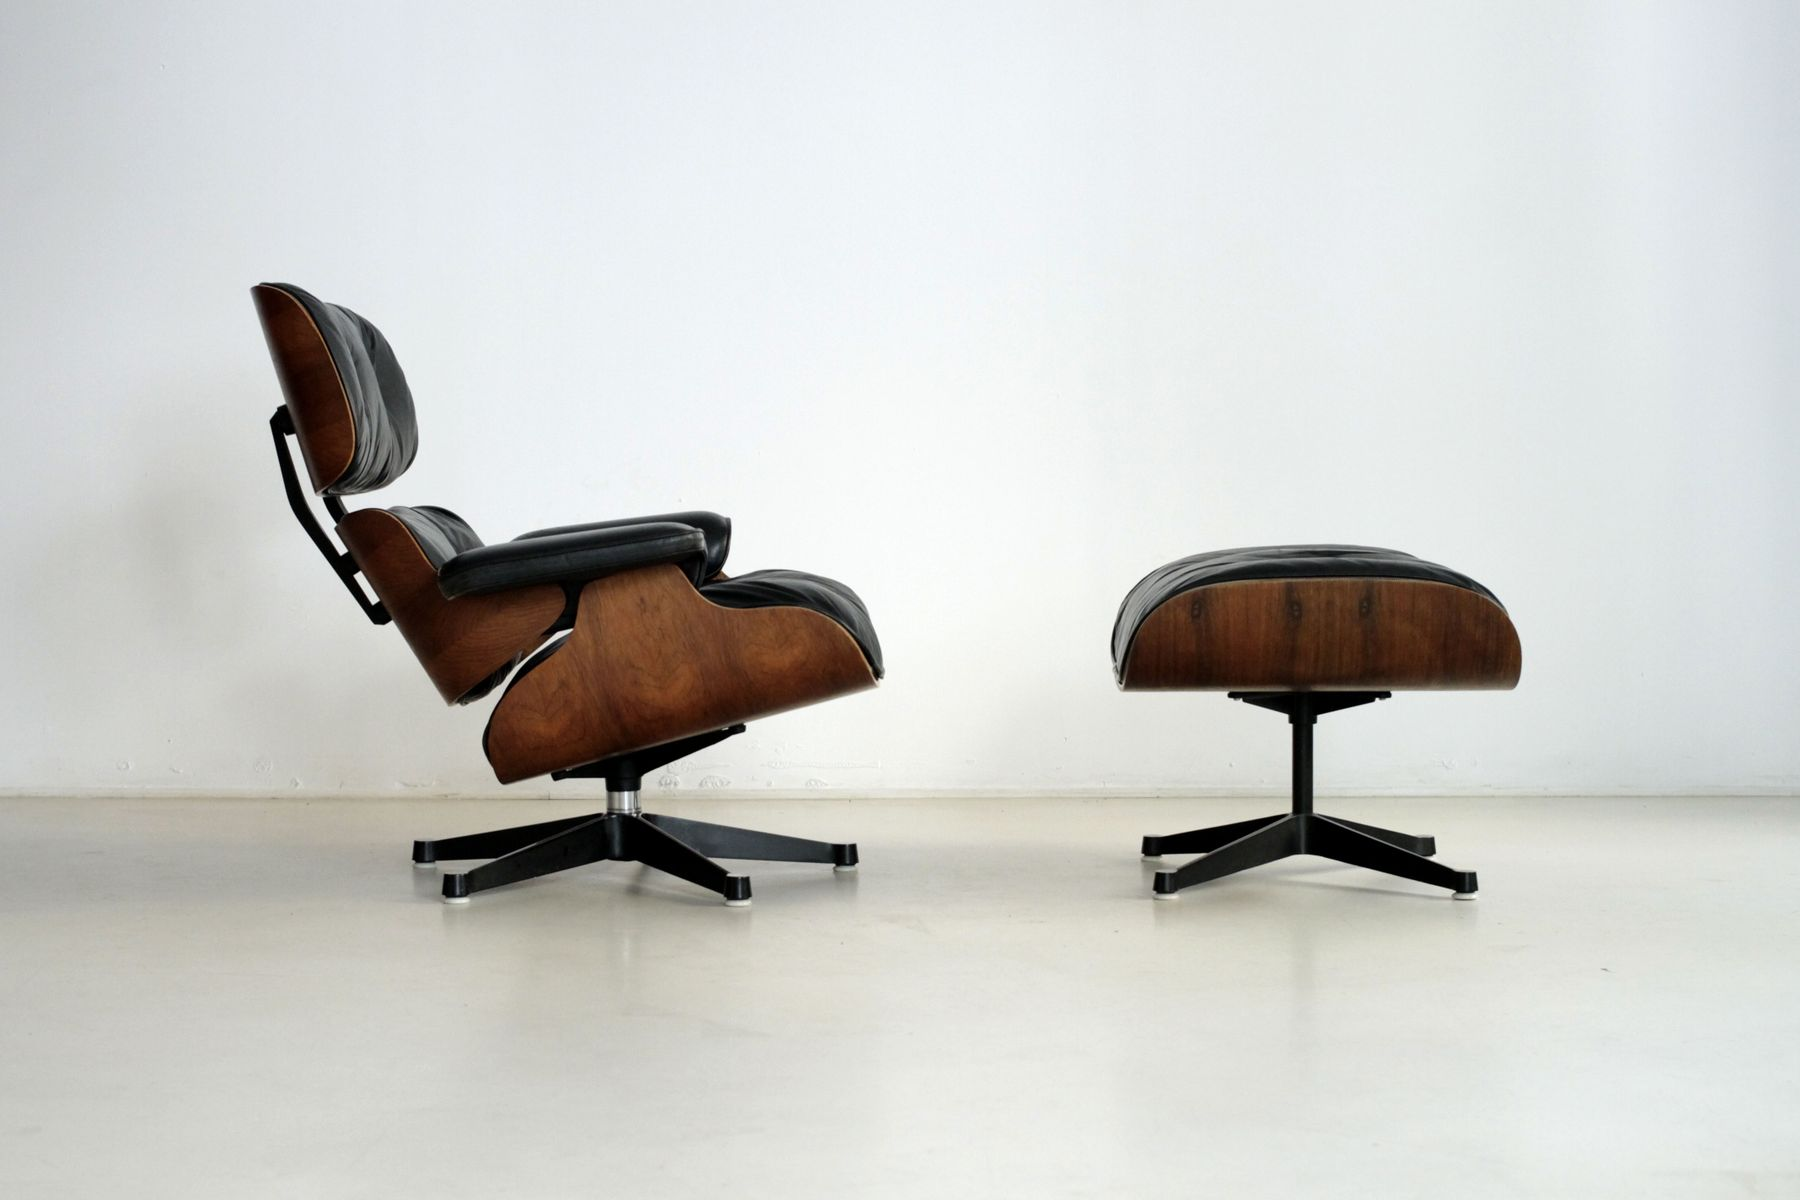 vintage swivel chair and ottoman by charles ray eames for herman